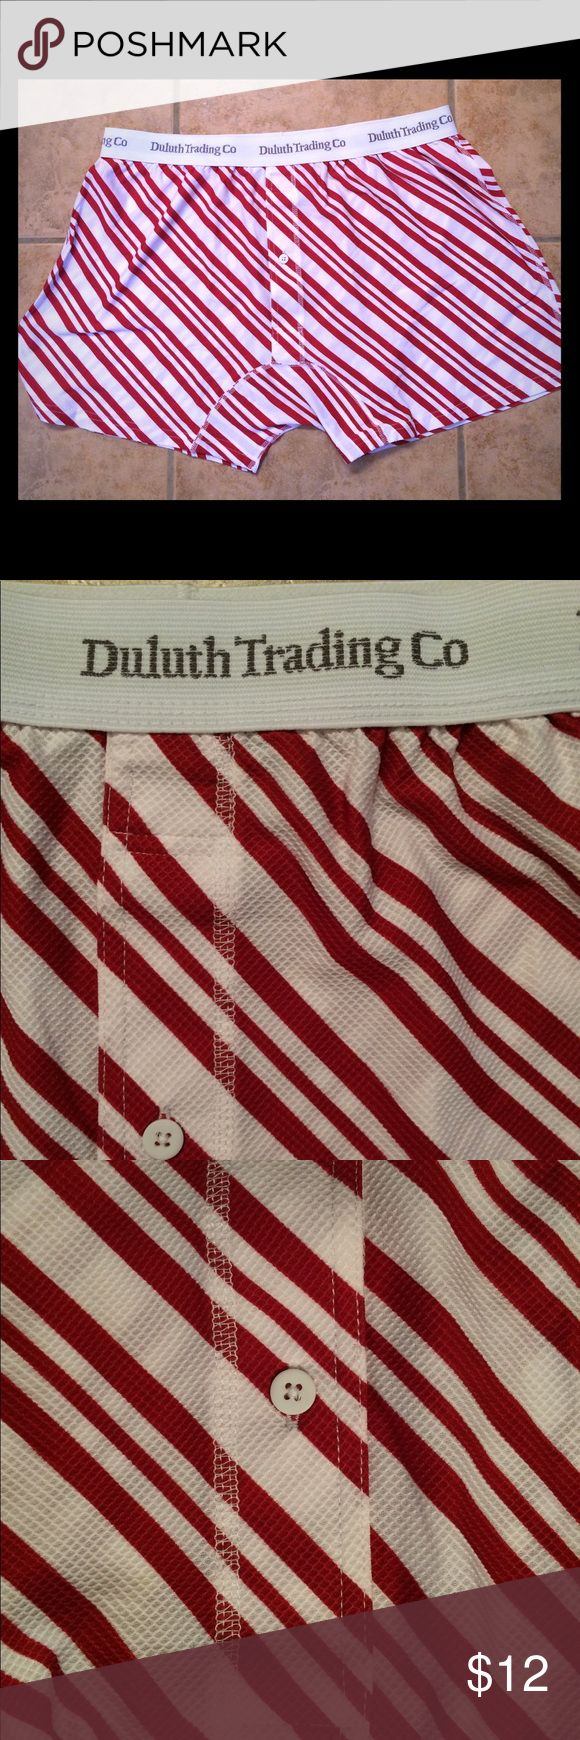 Men's Duluth Trading Co. Boxer Shorts These boxer shorts are all decked out for Christmas. They are new and never been worn. They are from the Duluth Trading Company. The fabric is red and white diagonal stripes which will make you look slimmer to. The fabric feels very comfortable and has 93% Nylon, and 7% Spandex and is machine washable. Duluth Trading Company Underwear & Socks Boxers